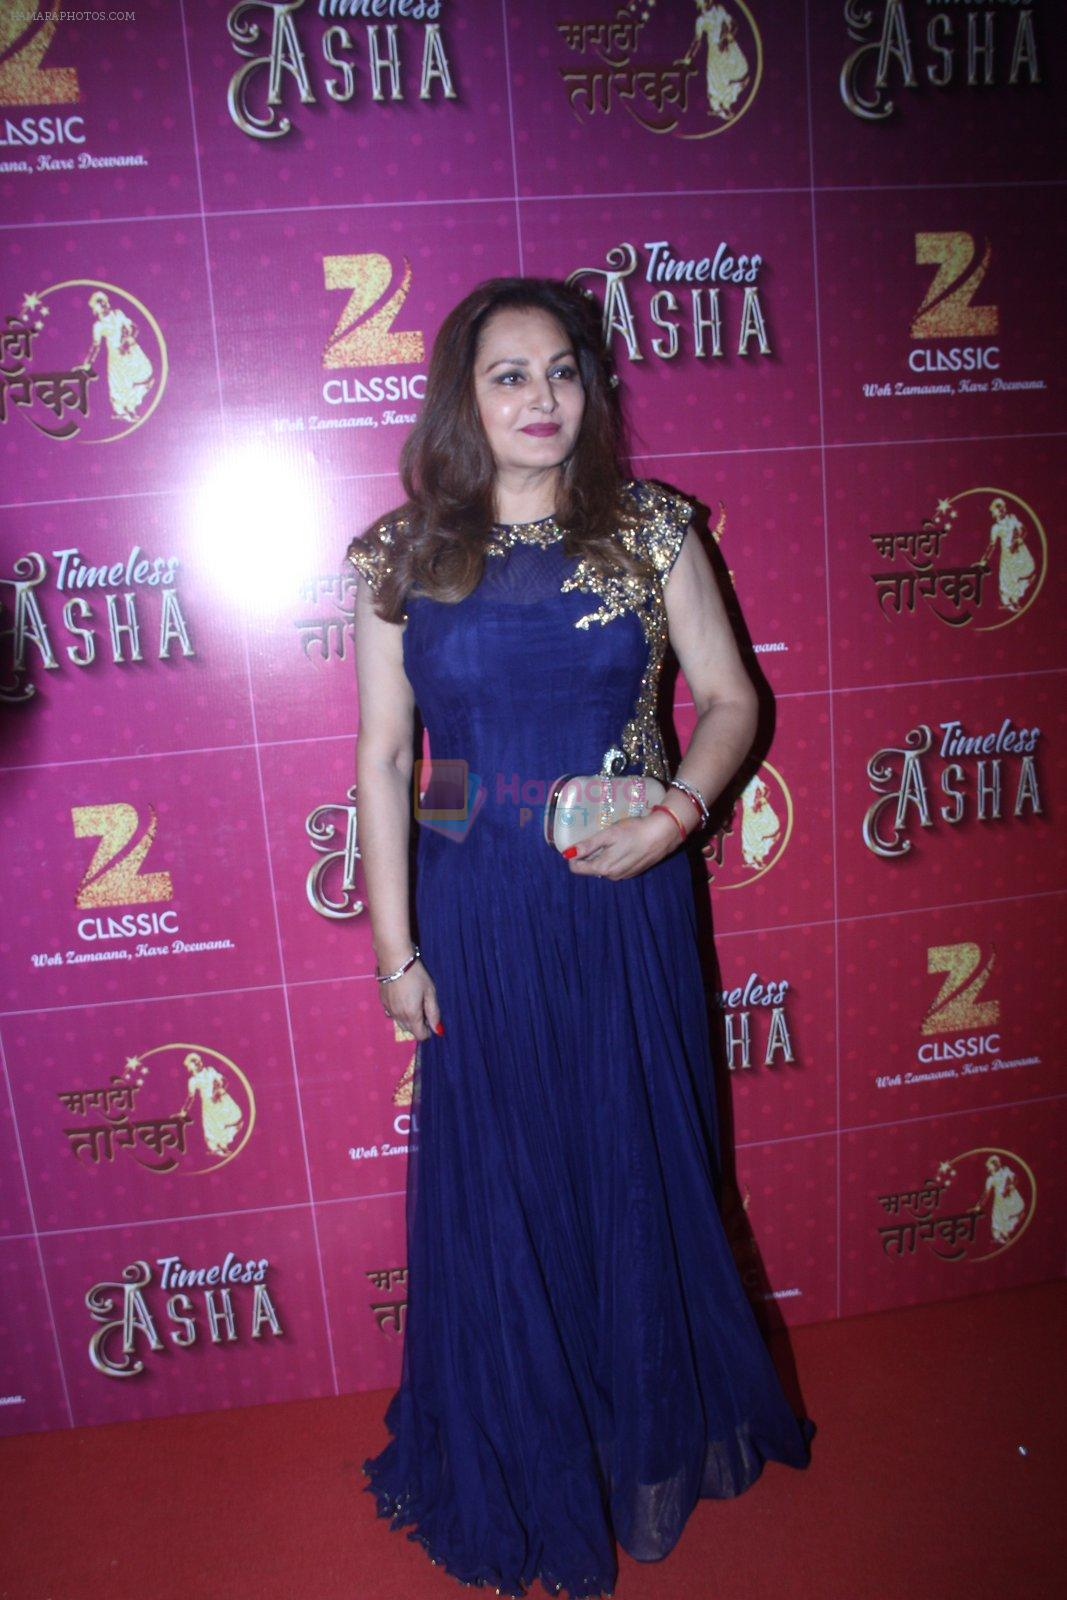 Bollywood actor Jaya Prada during the musical concert Timless Asha organised by Zee Classsic on occasion of Bollywood singer Asha Bhosle 83rd birthday in Mumbai, India on September 8, 2016